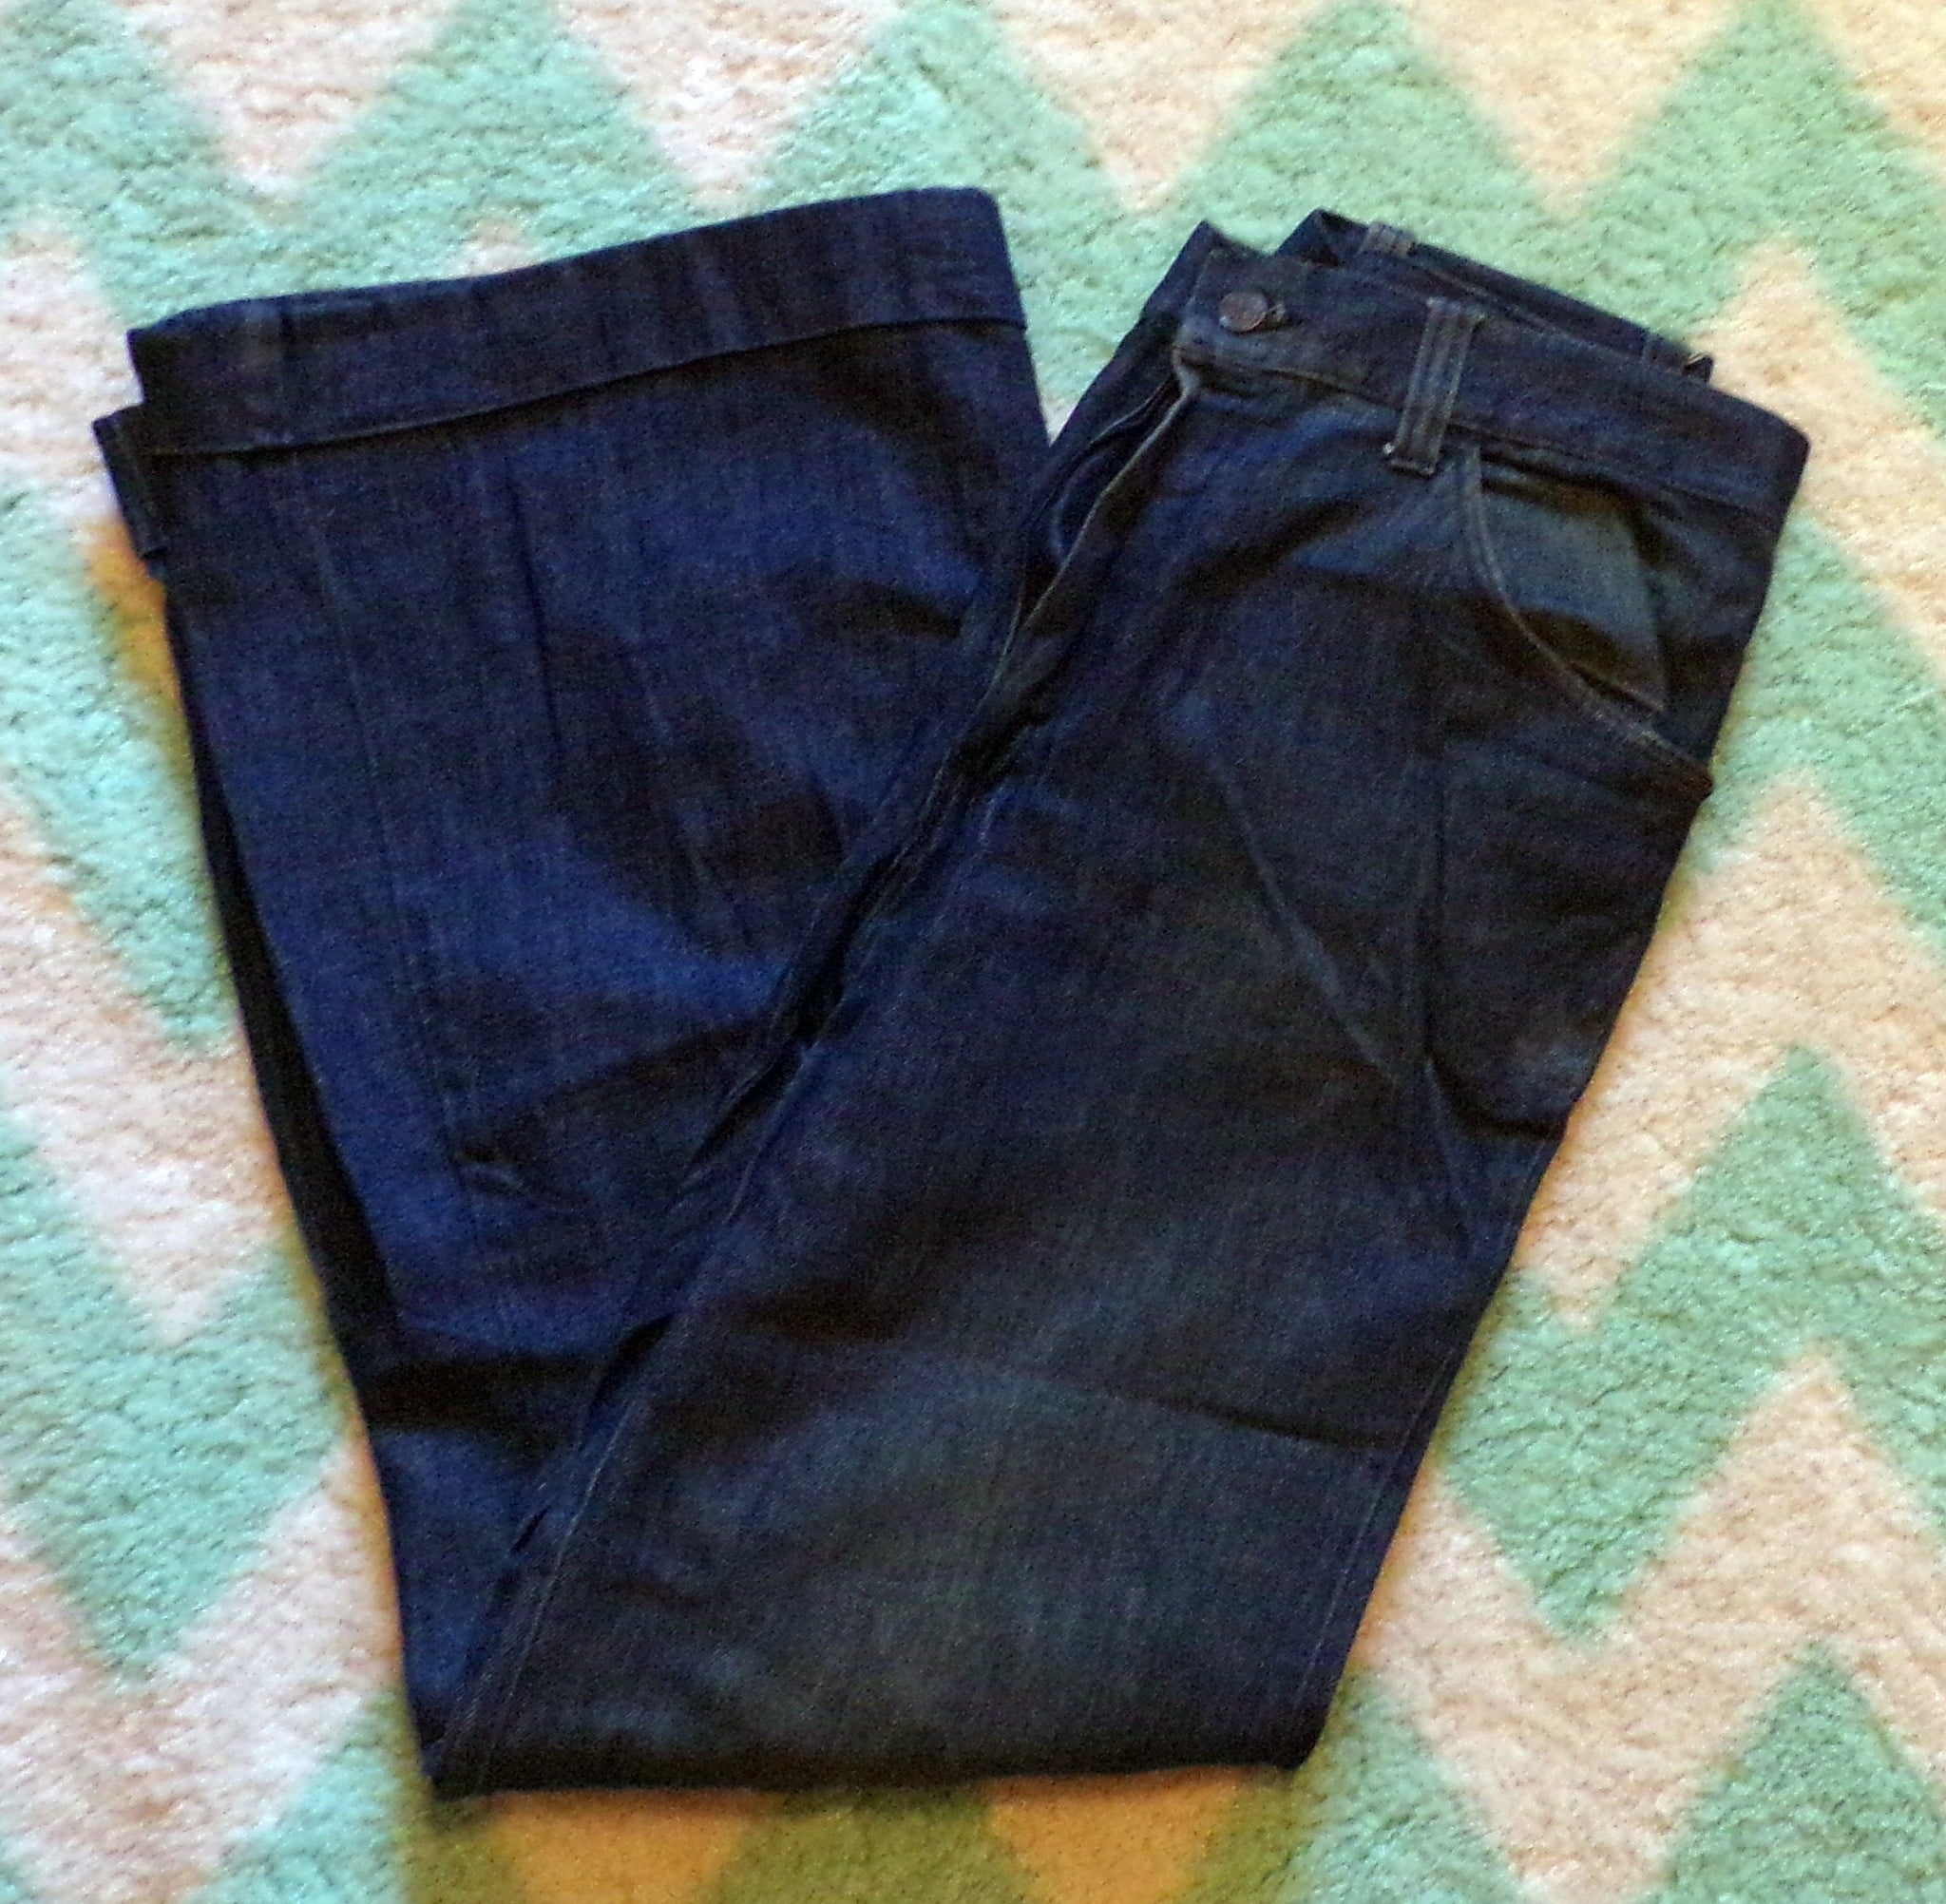 1970's WIDE LEG work JEANS cuffed M 70's (E3)